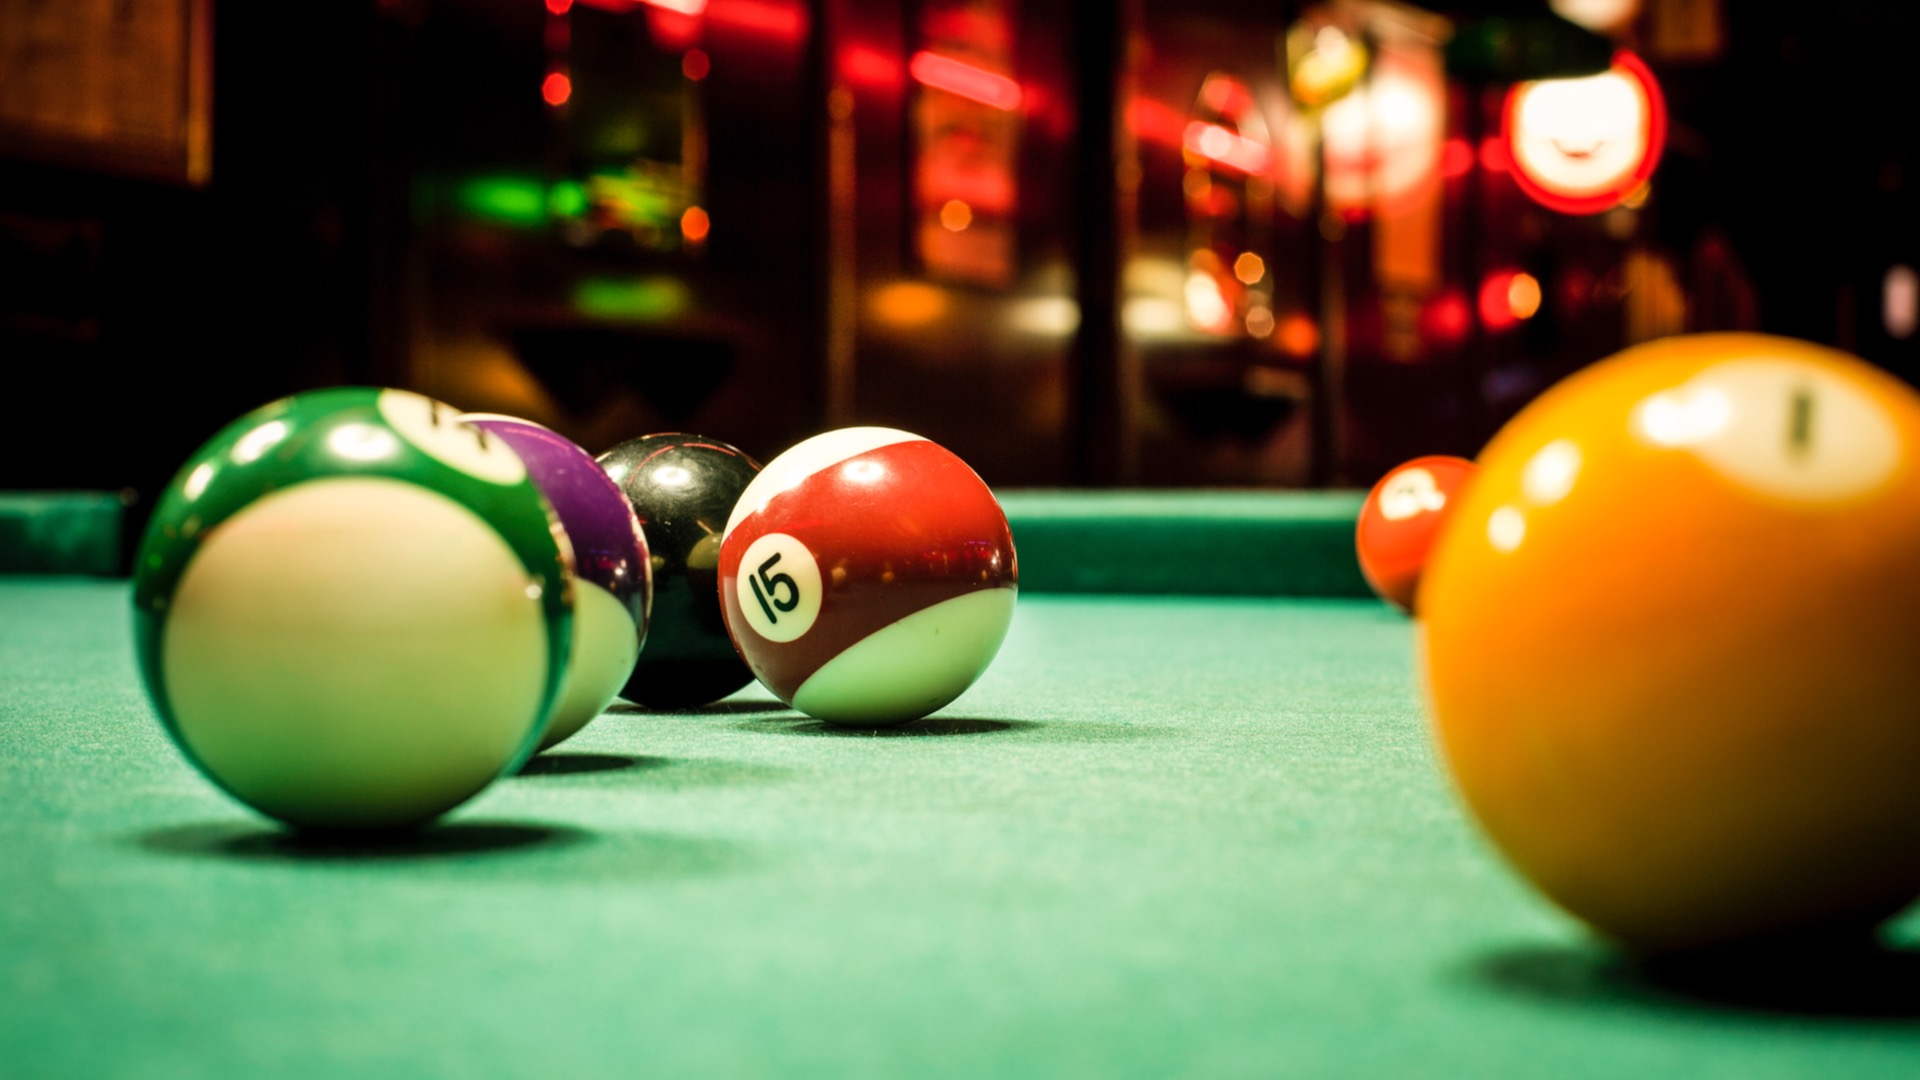 A billiards table with balls | Baltimore's best gaming bars